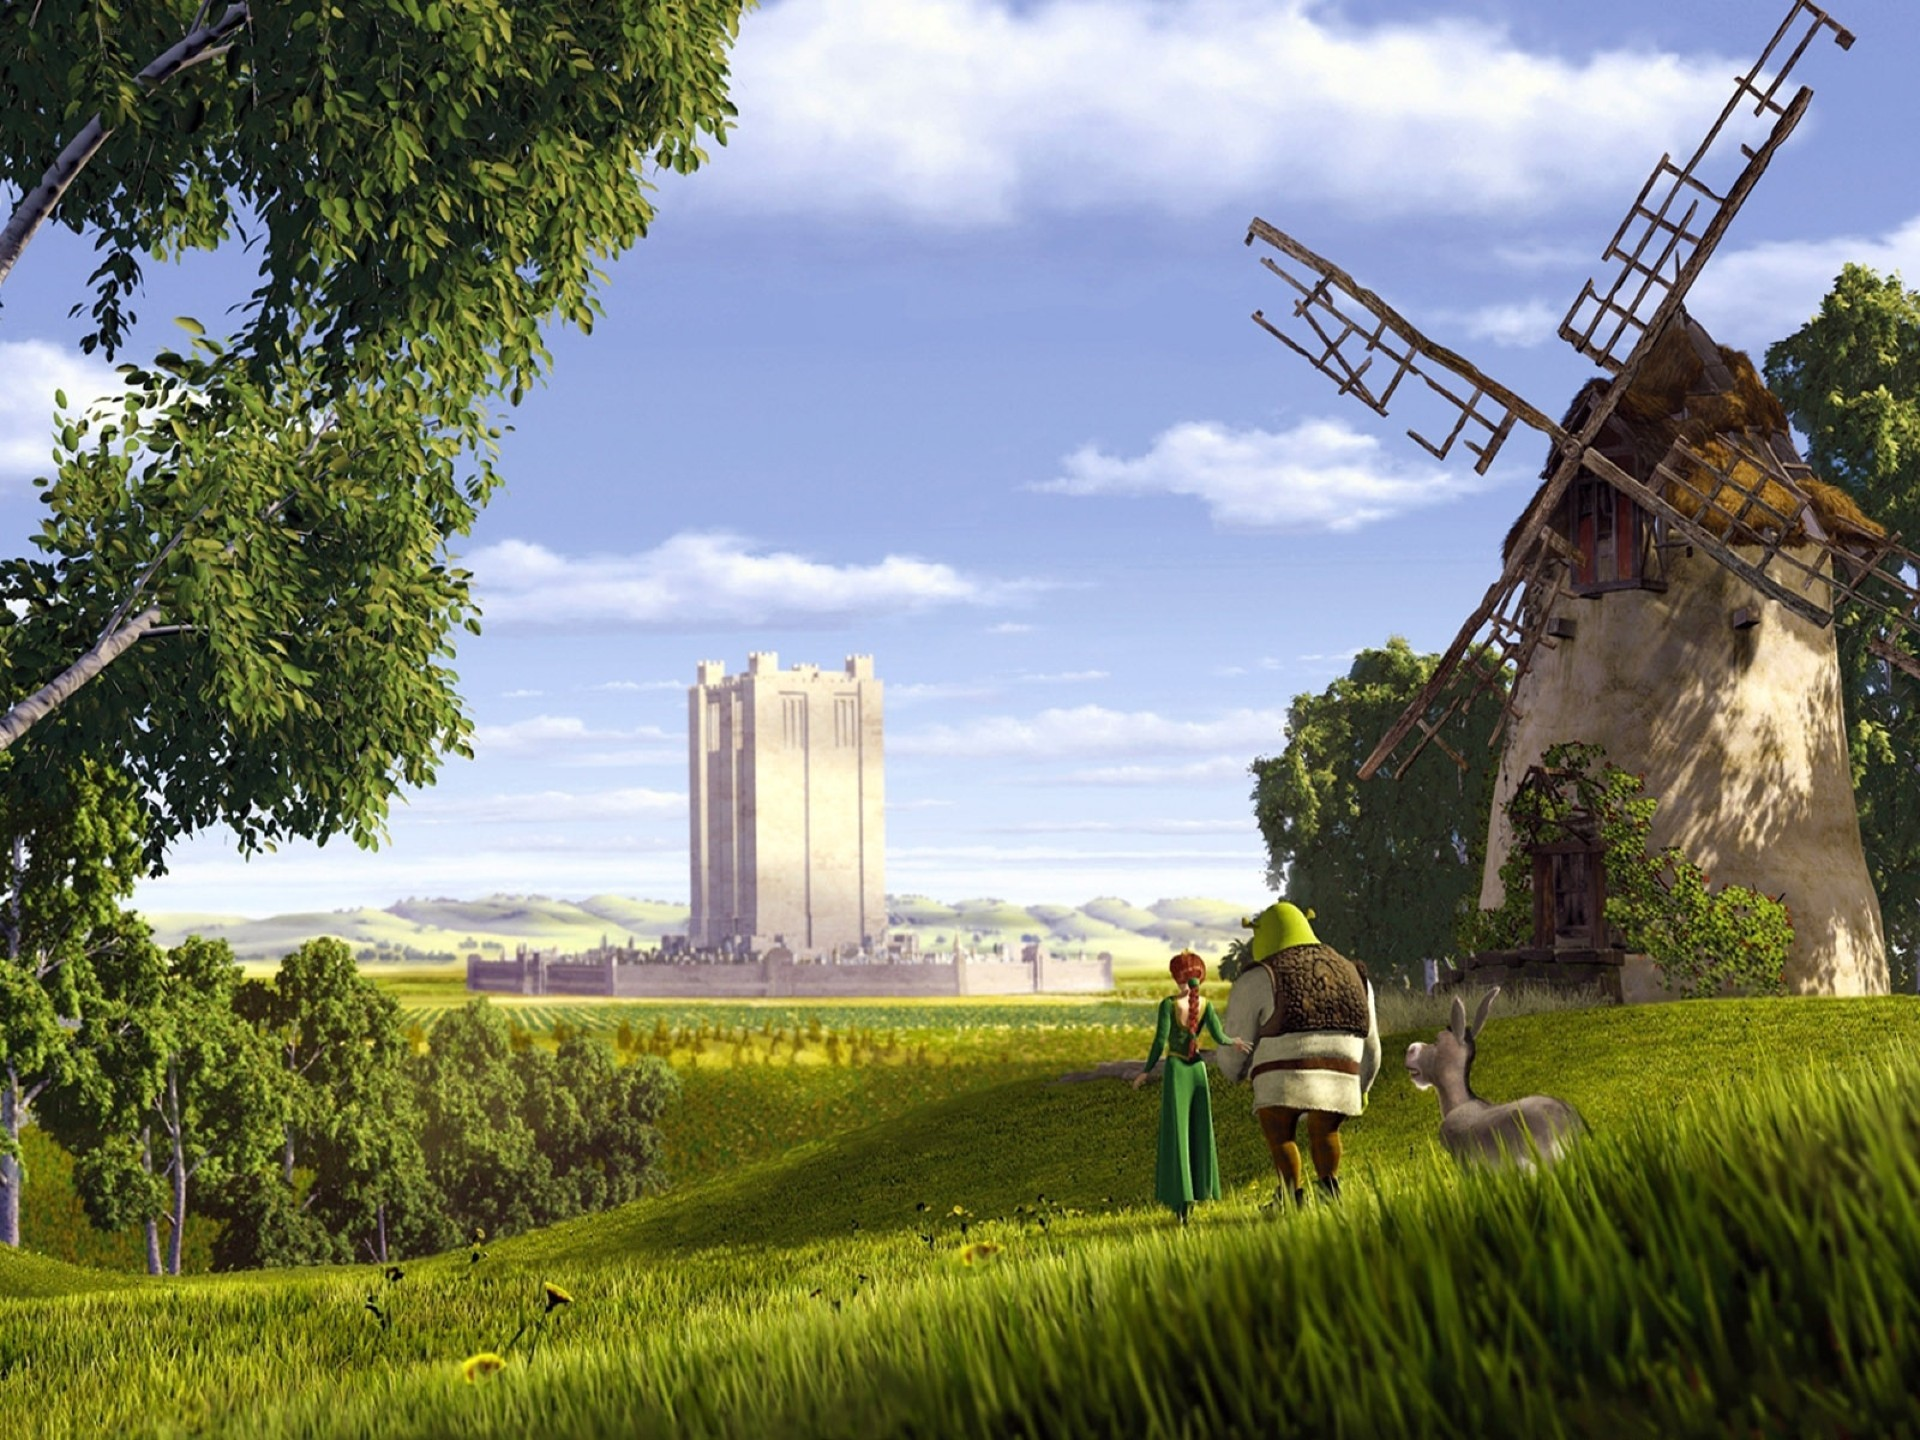 Donkey Shrek And His Beloved Walking In A Field Android Wallpapers For Free